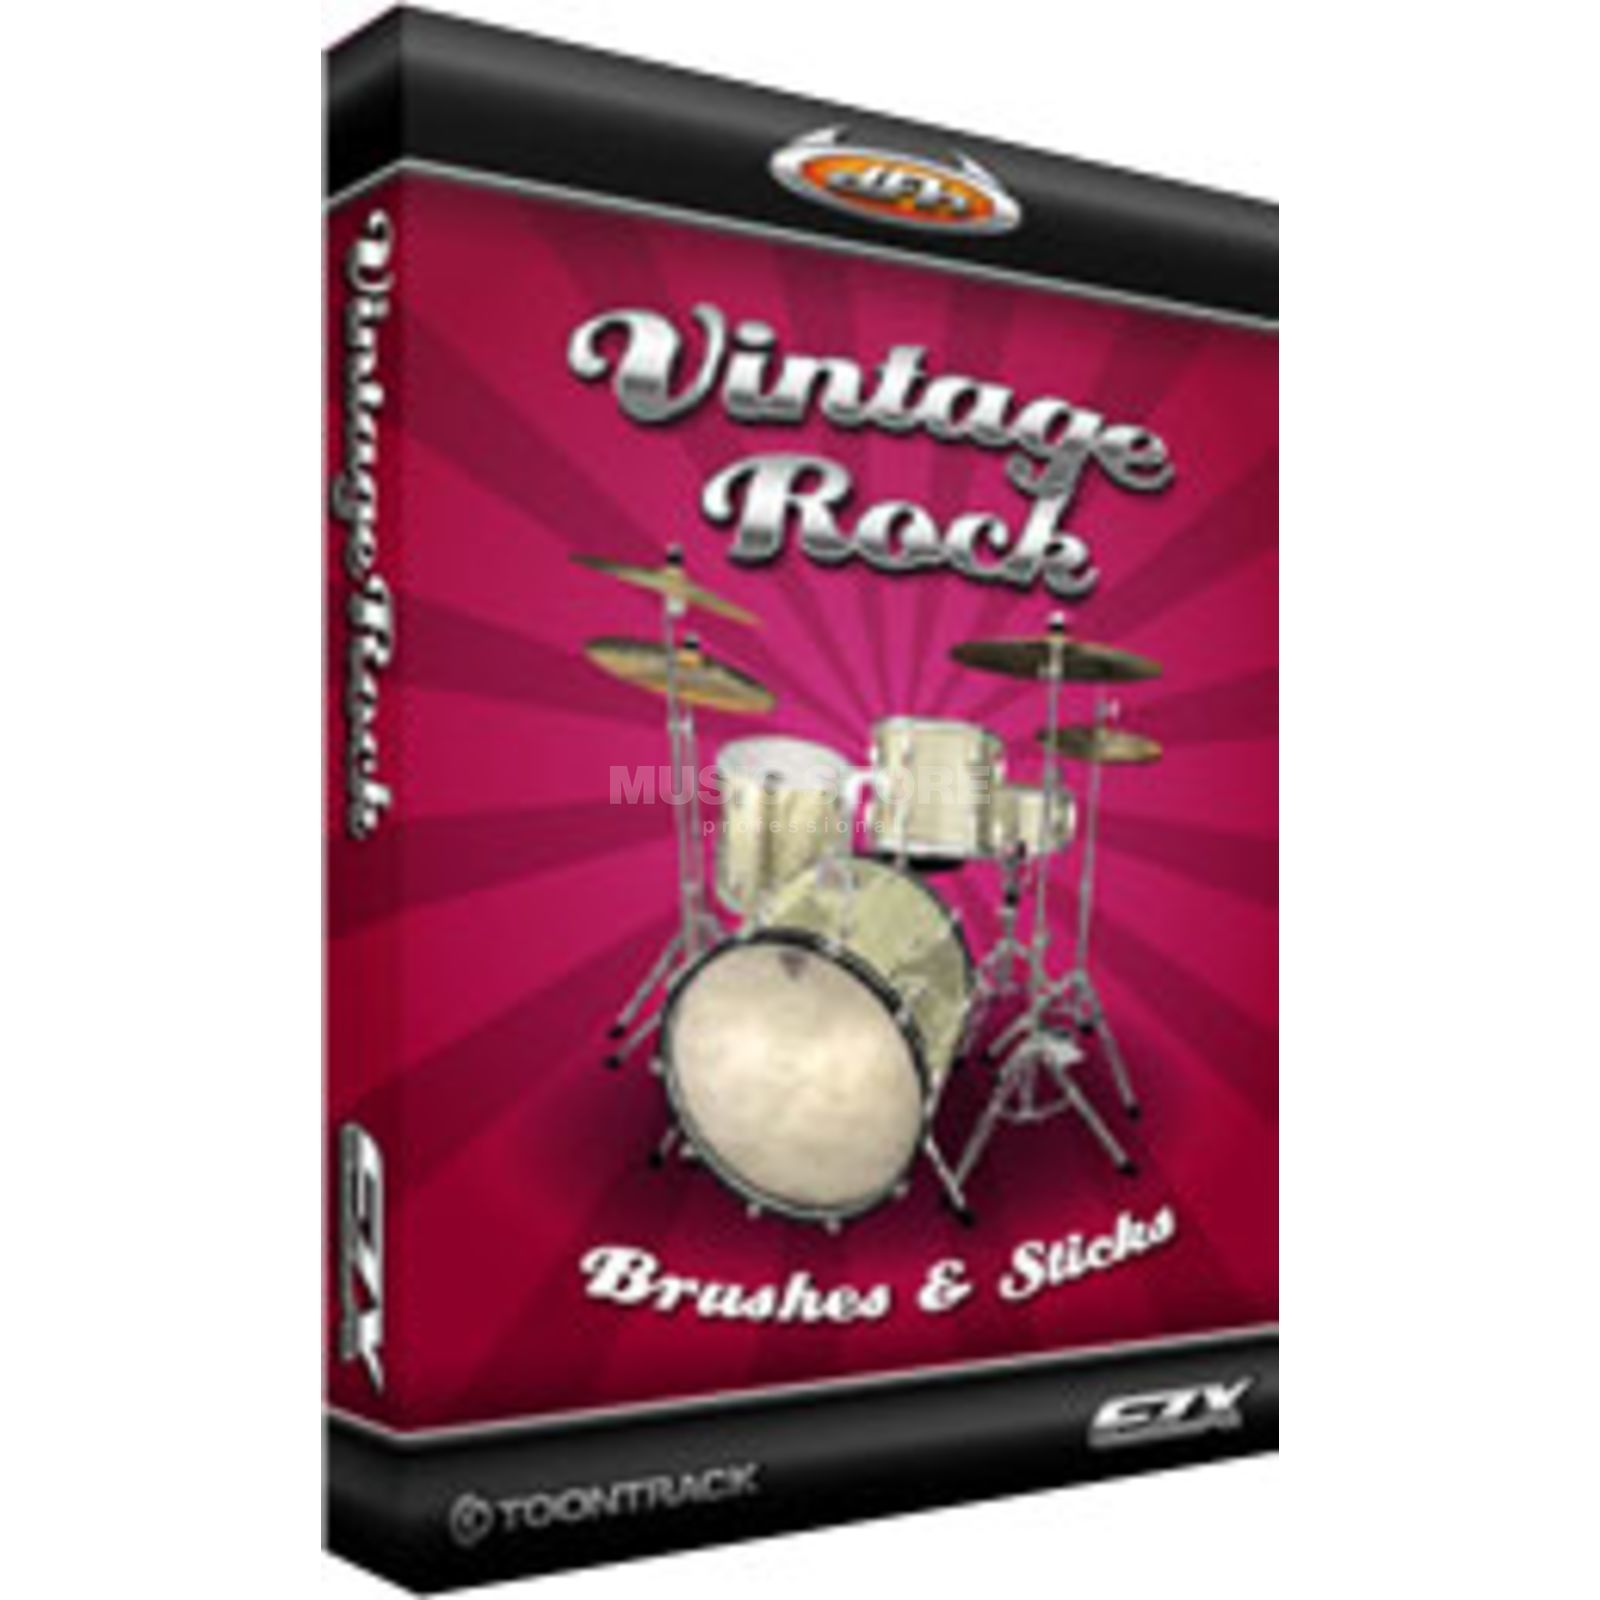 Toontrack EZX Vintage Rock Brush&Sticks Expansion for EZ Drummer /DVD Produktbillede